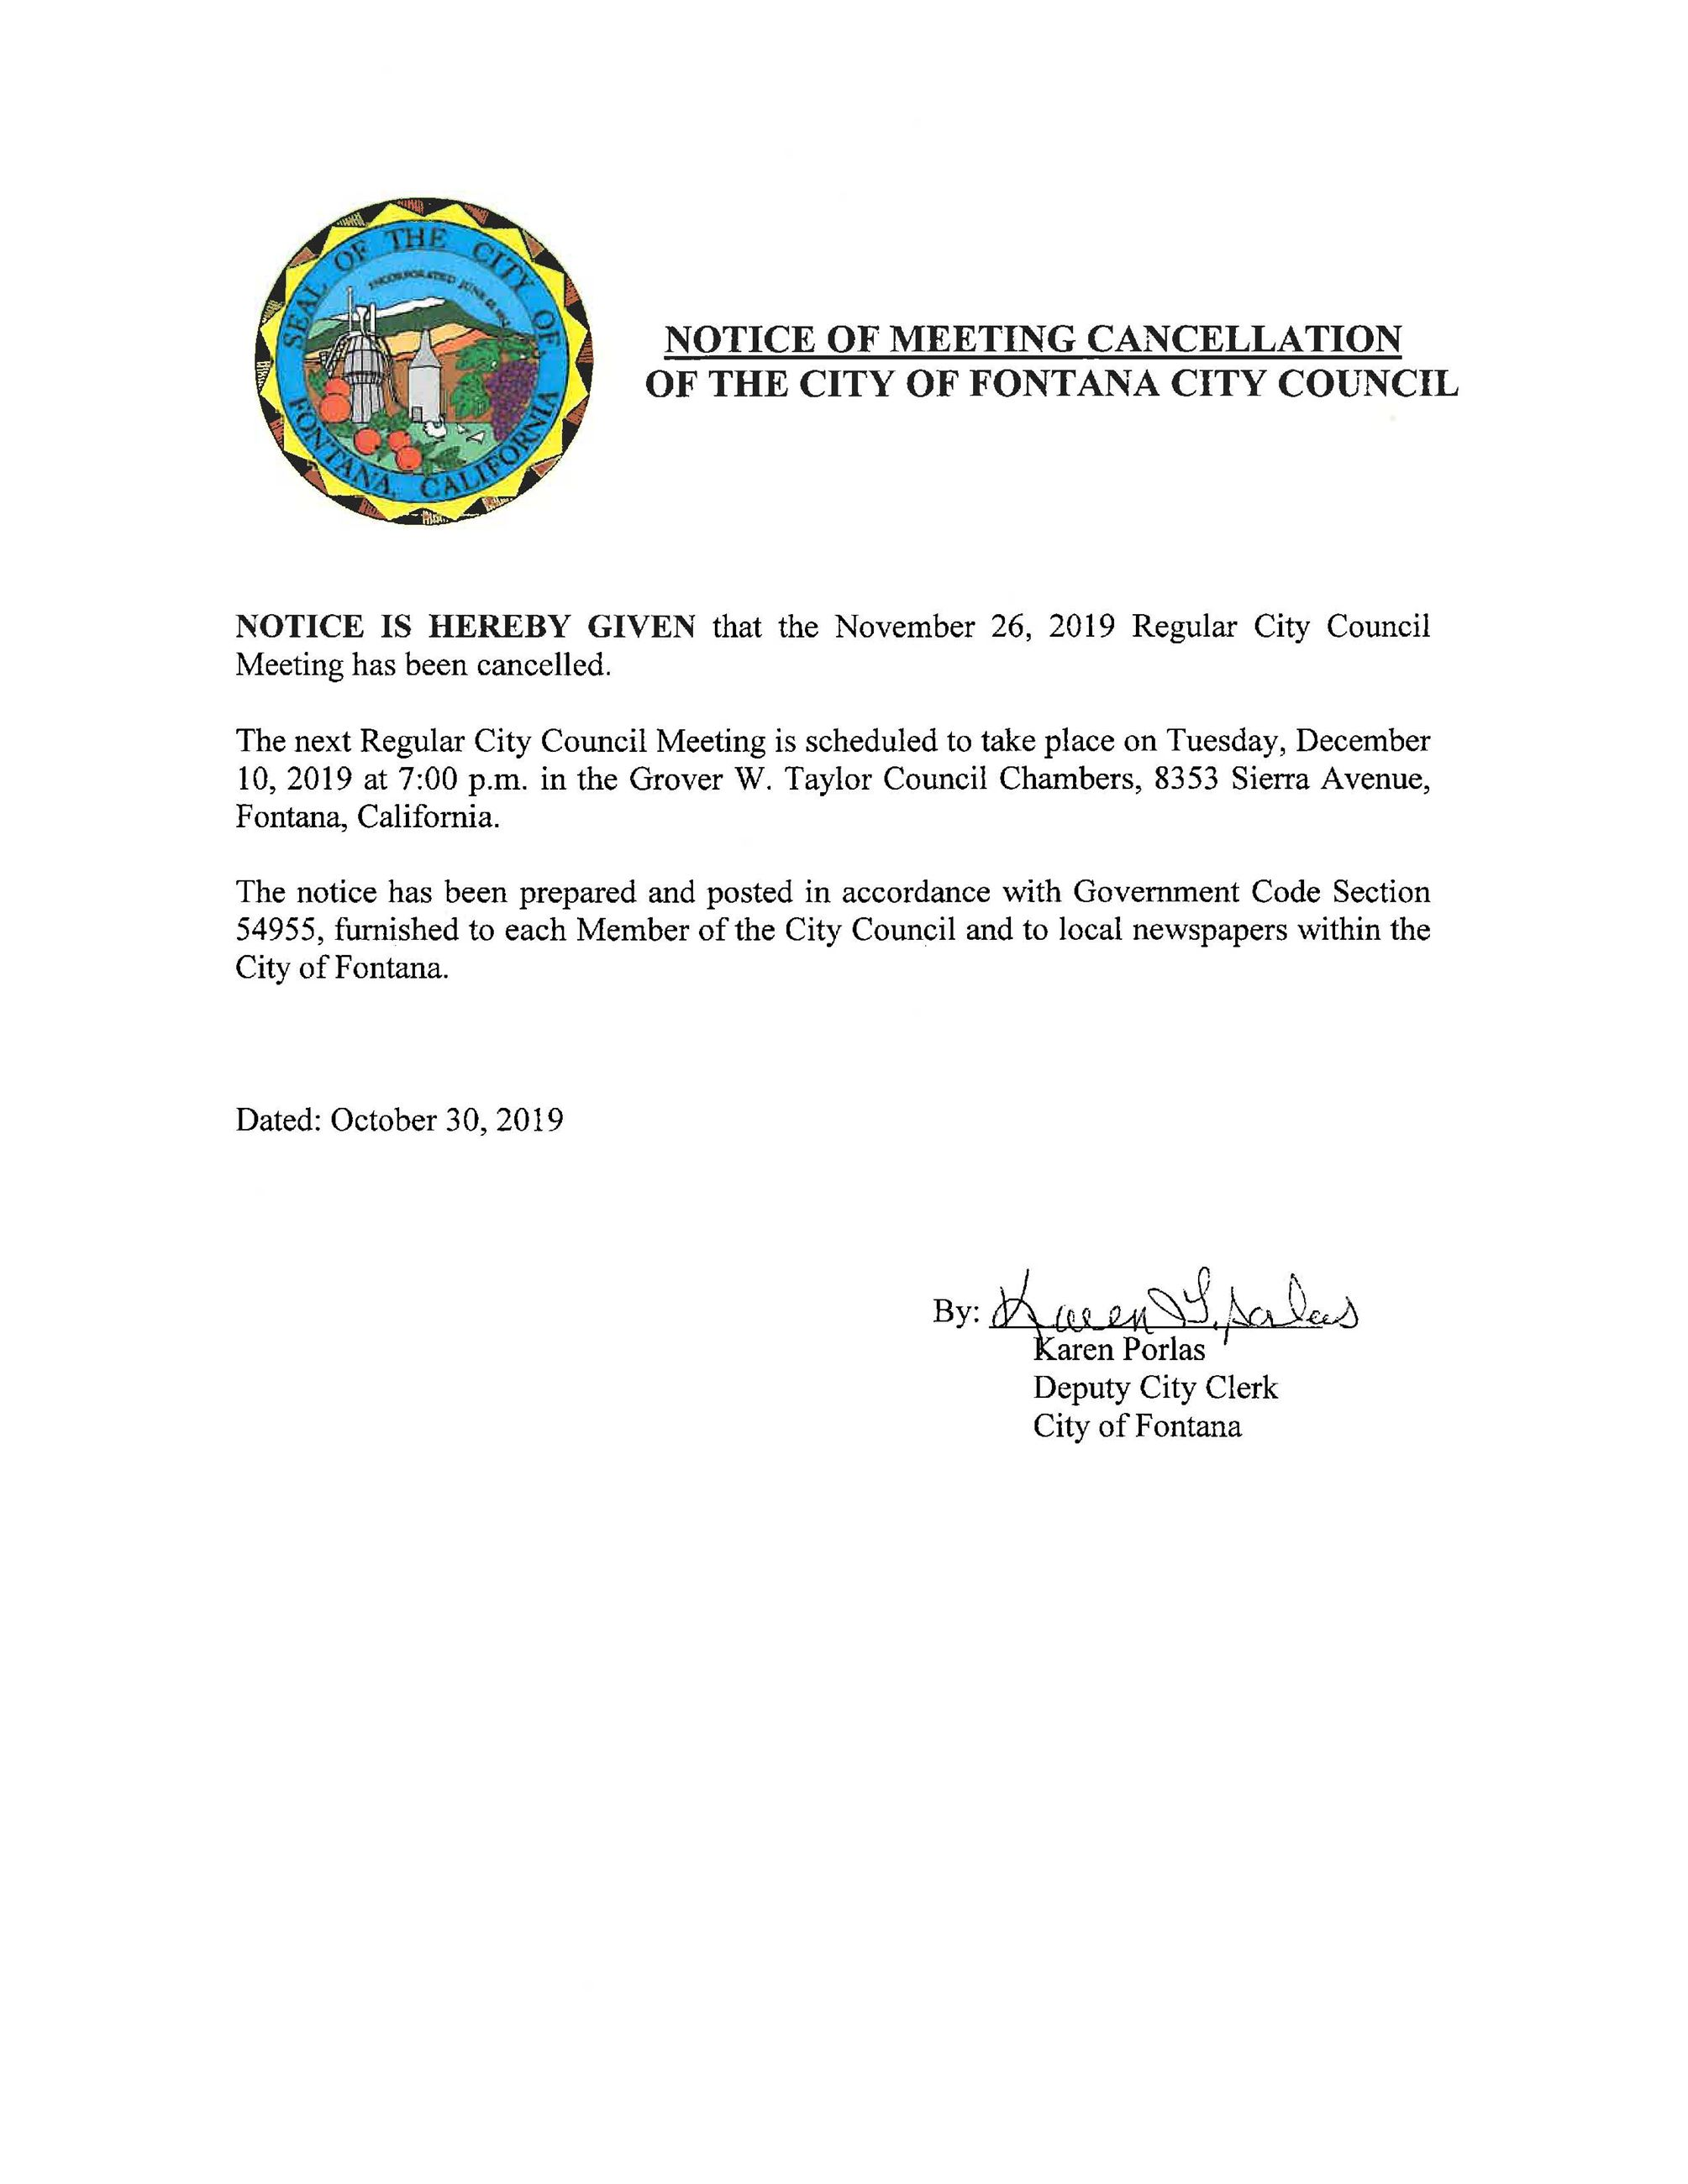 Notice of Cancellation - November 26, 2019